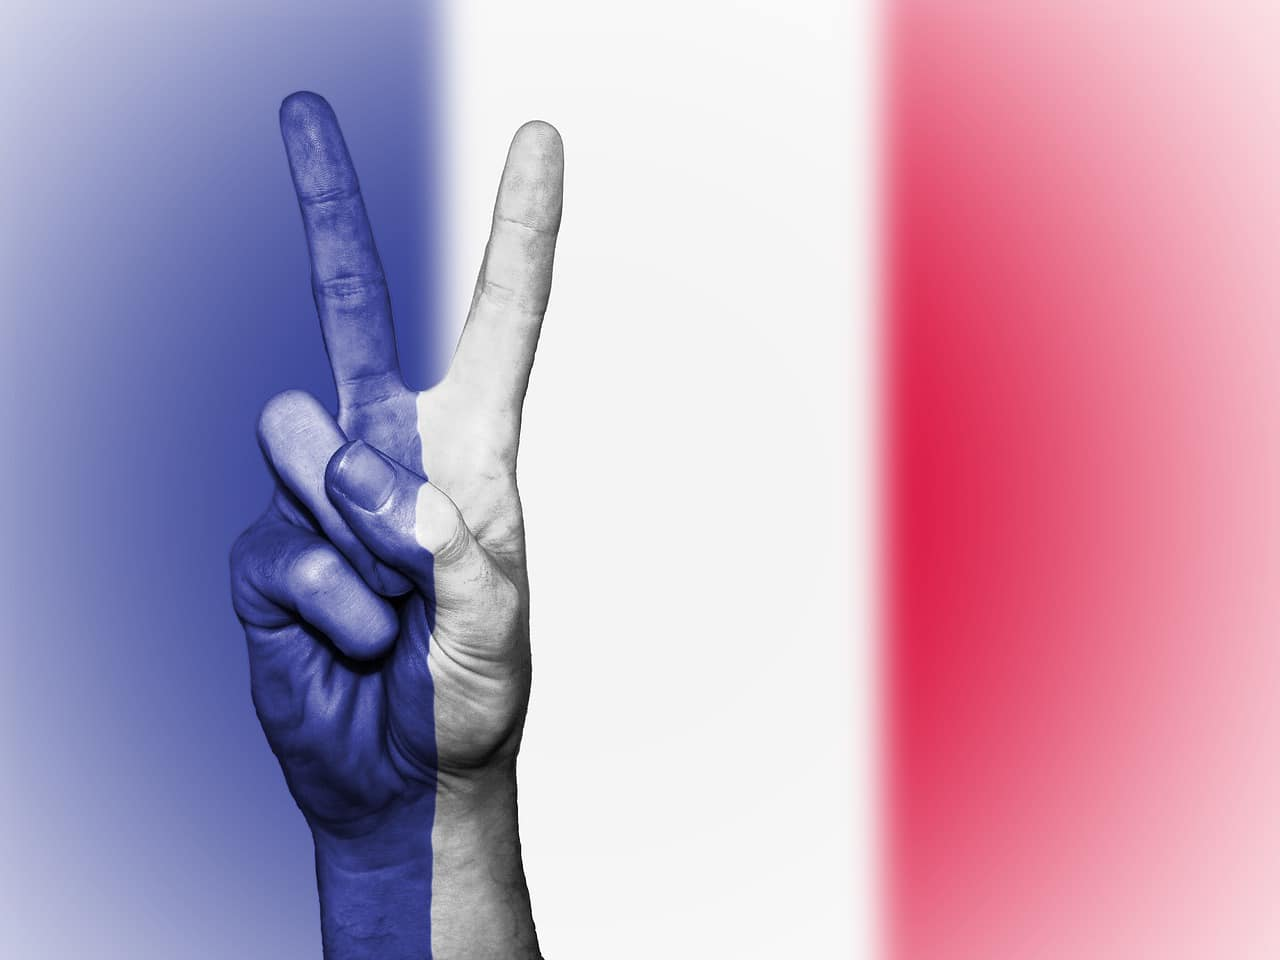 france élection